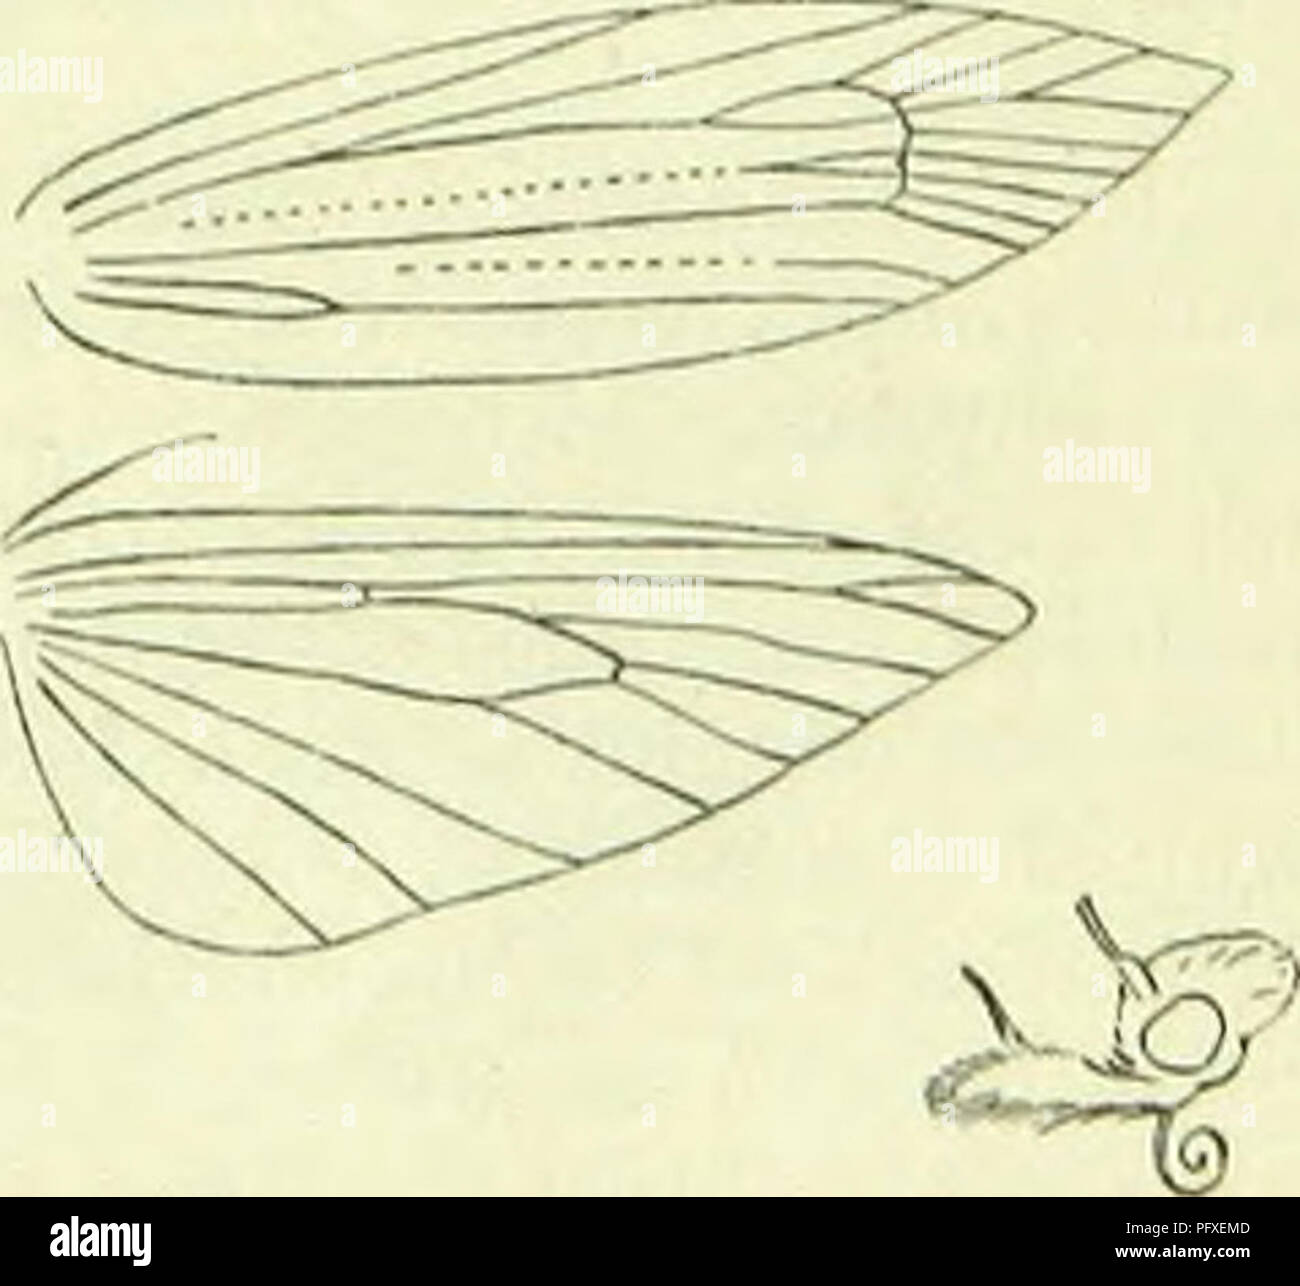 . A handbook of British lepidoptera. Lepidoptera. YI'ONOMKUTAl PLUTELLIDAE 697 Larva yellowish-grey ; spots black : on Sedum telephiwm ; 6, 7, 9, 10. 4. Orthotaelia, St/ph. Head with oppressed hairs. Antennae ;.', in <J serrate, shortly ciliated, basal joint without pecten. Labial palpi long, recurved, second joint with appresscd scales, terminal longer than second, acute. Maxillary palpi very short, filiform. Abdomen elongate. Forcwings: 7 and 8 separate, 8 to apex. Hindwings over 1, oblong-ovate, cilia ; 3 and 4 connate, 6 and 7 nearly parallel. Includes only the single species. Imago wi - Stock Image